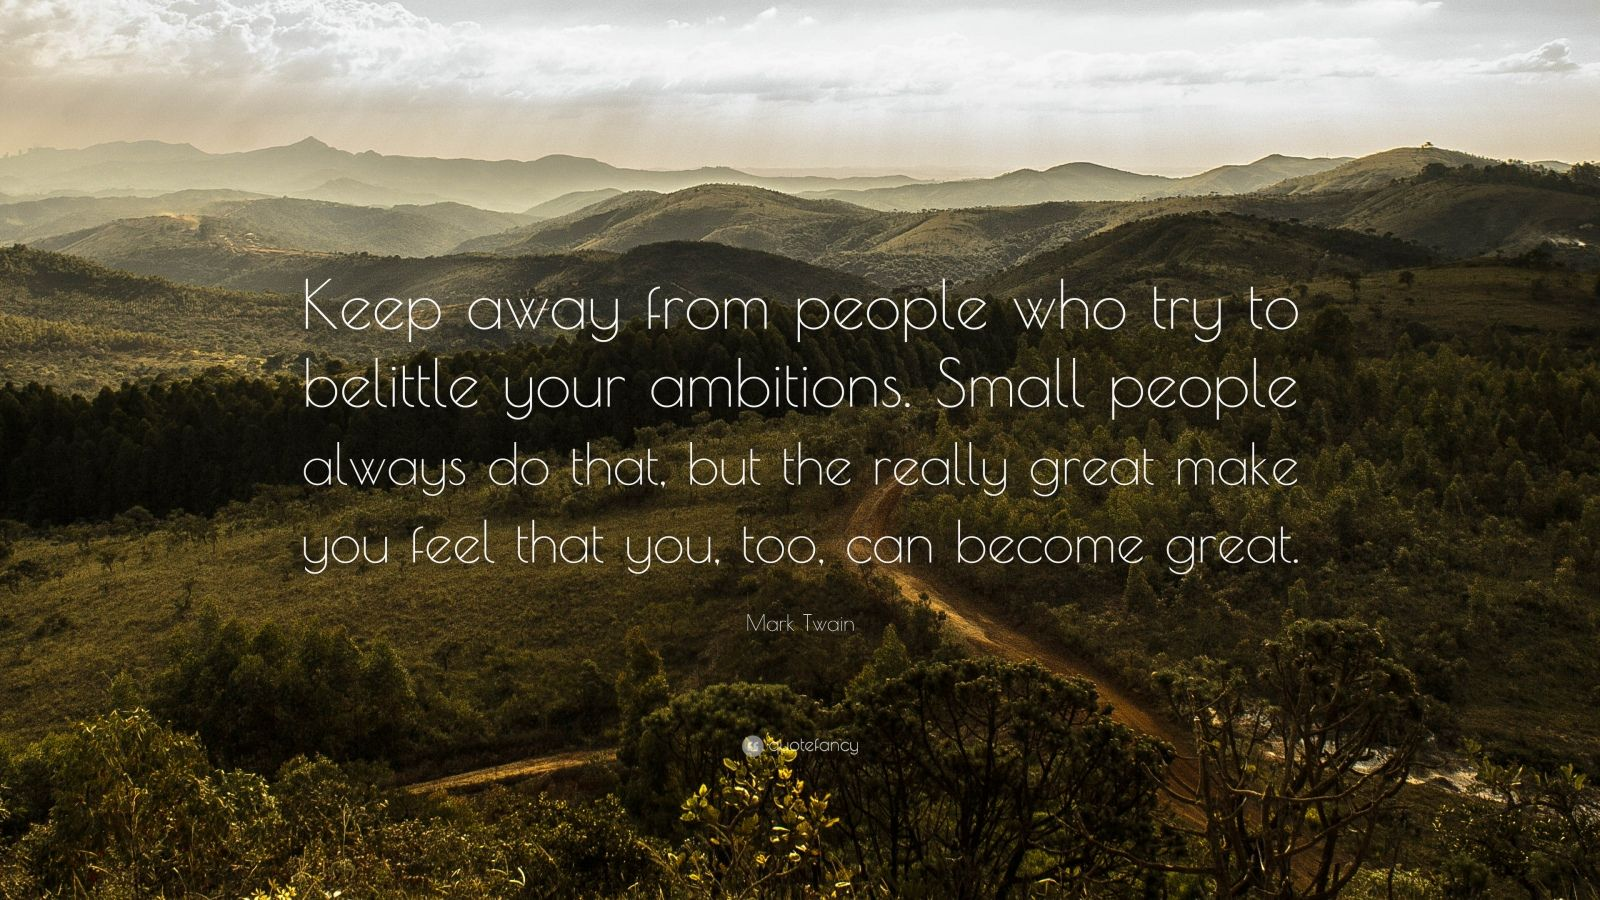 """Mark Twain Quote: """"Keep away from people who try to belittle your ambitions. Small people always do that, but the really great make you feel that you, too, can become great."""""""